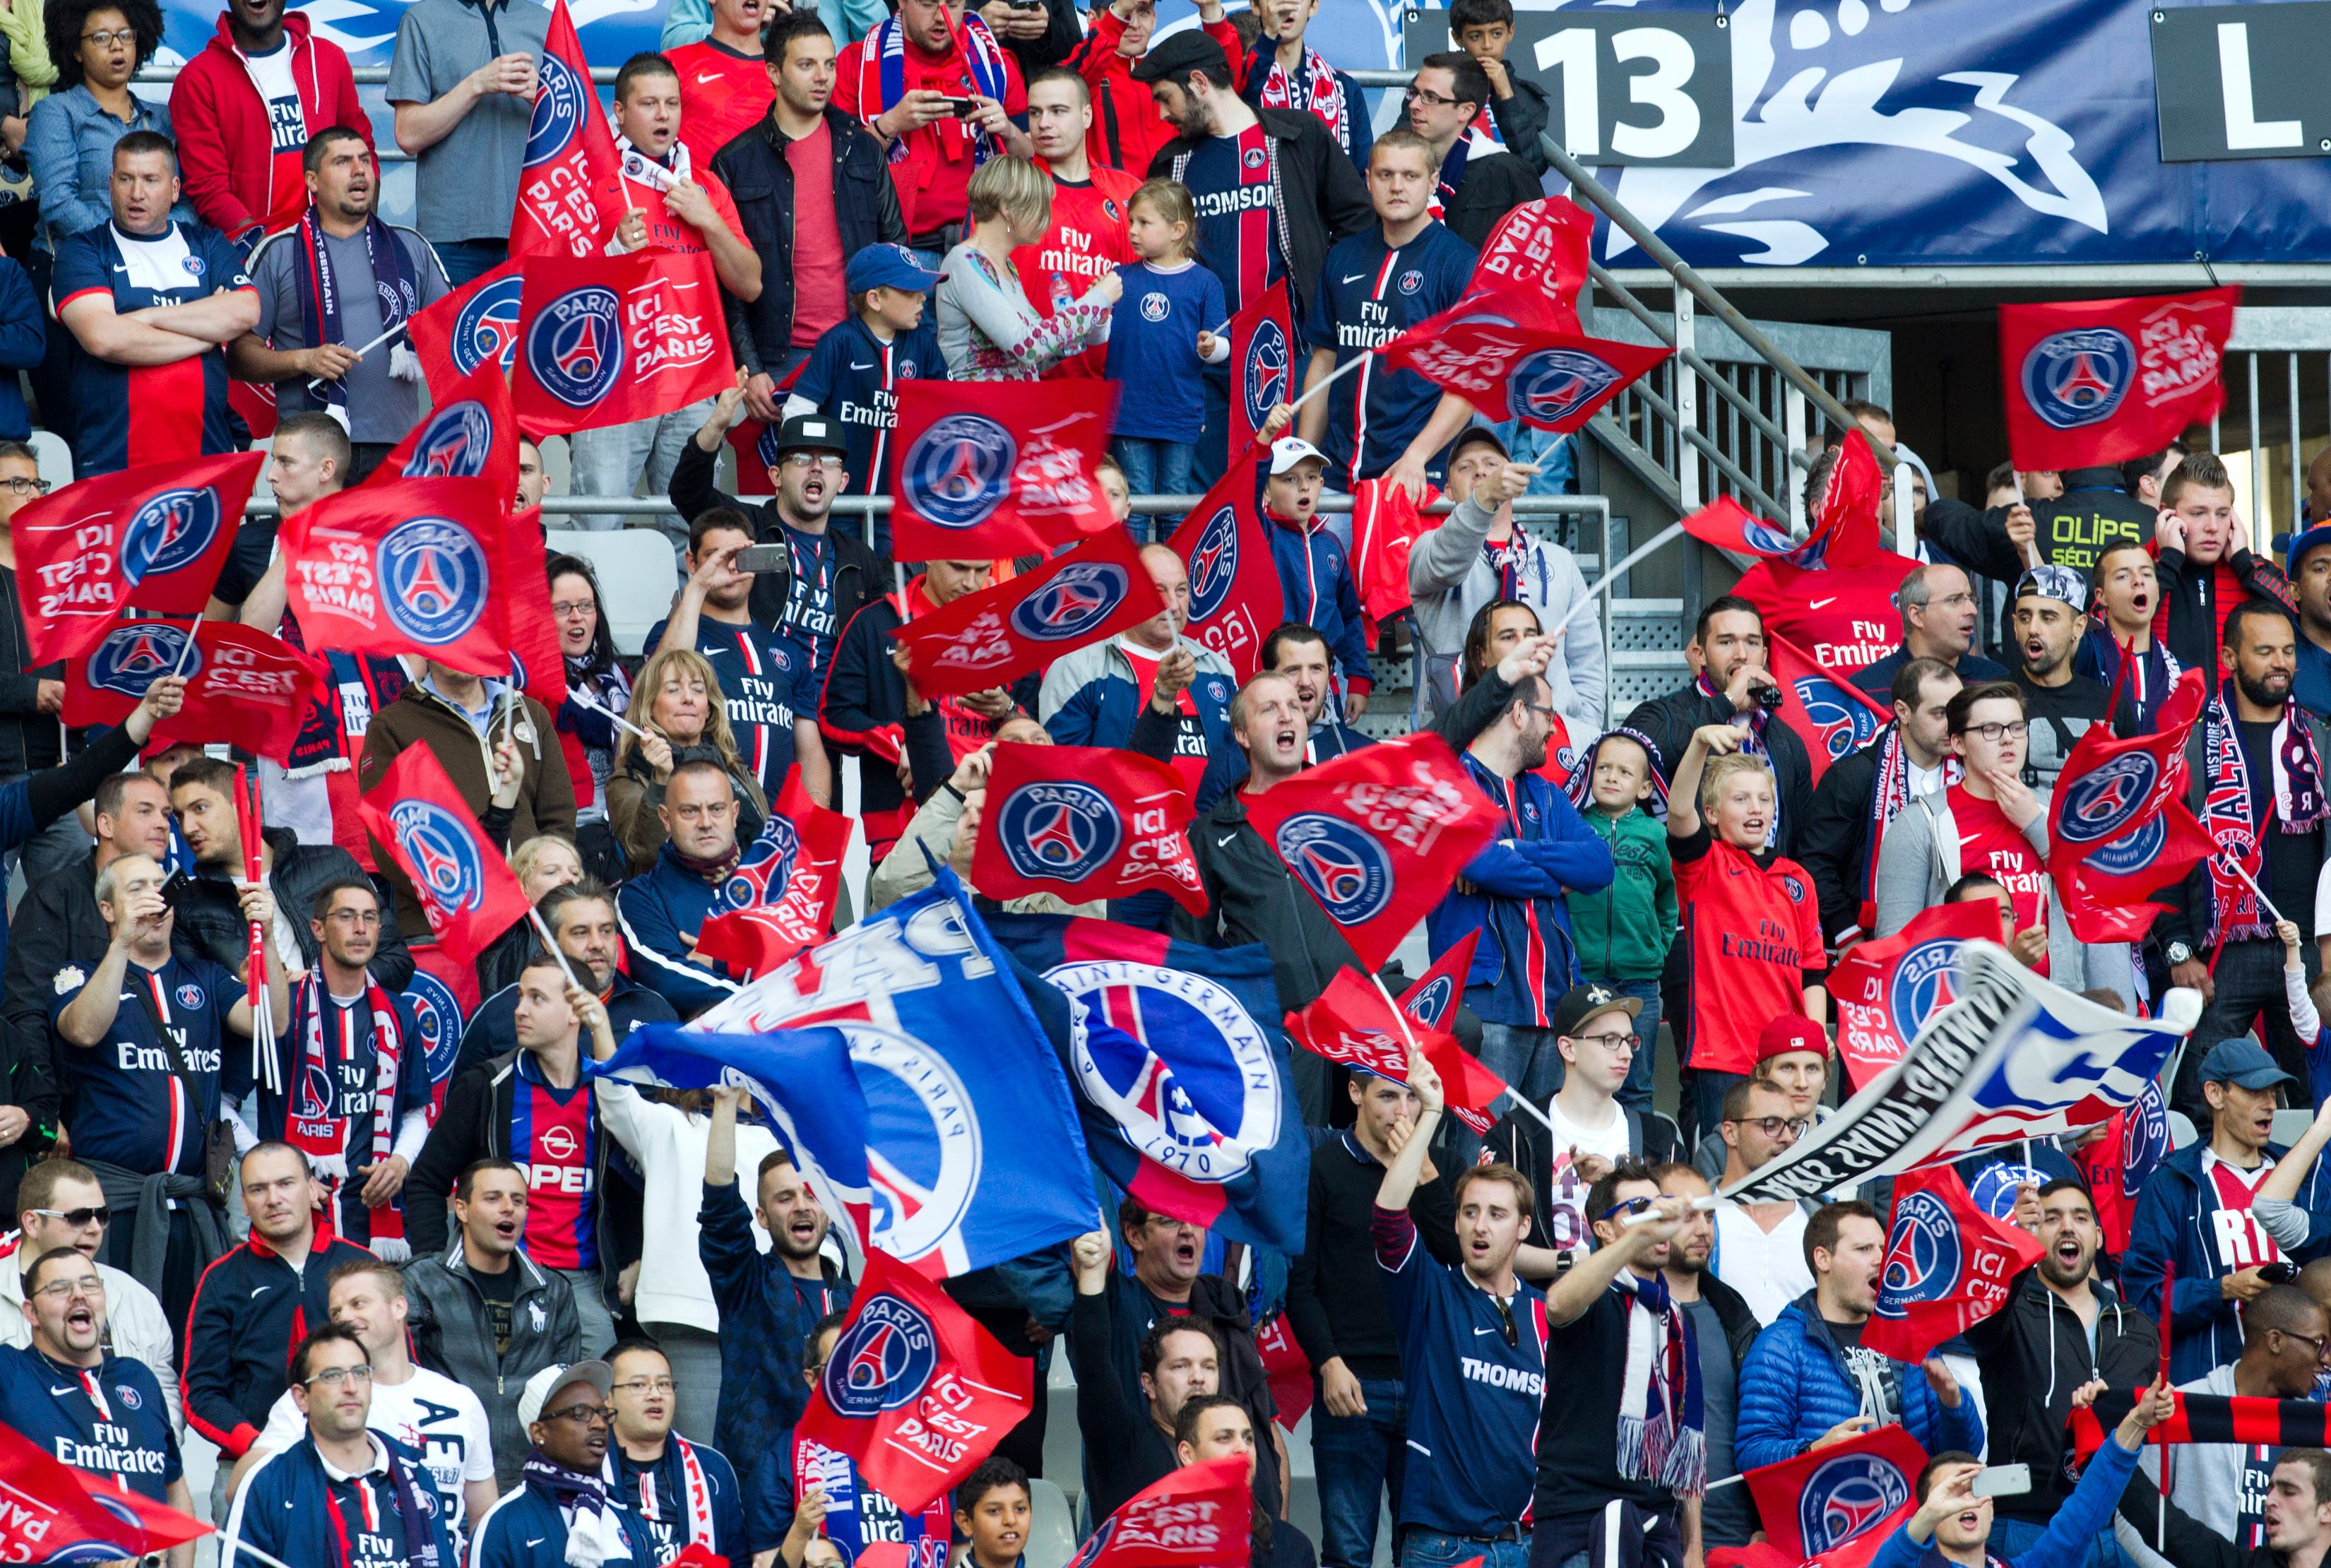 Paris Saint Germain (PSG) fans celebrate during the French Cup final soccer match between PSG and Auxerre at the Stade de France Stadium, in Saint Denis, north of Paris, Saturday May 30, 2015. PSG won 1-0. (AP Photo/Jacques Brinon)